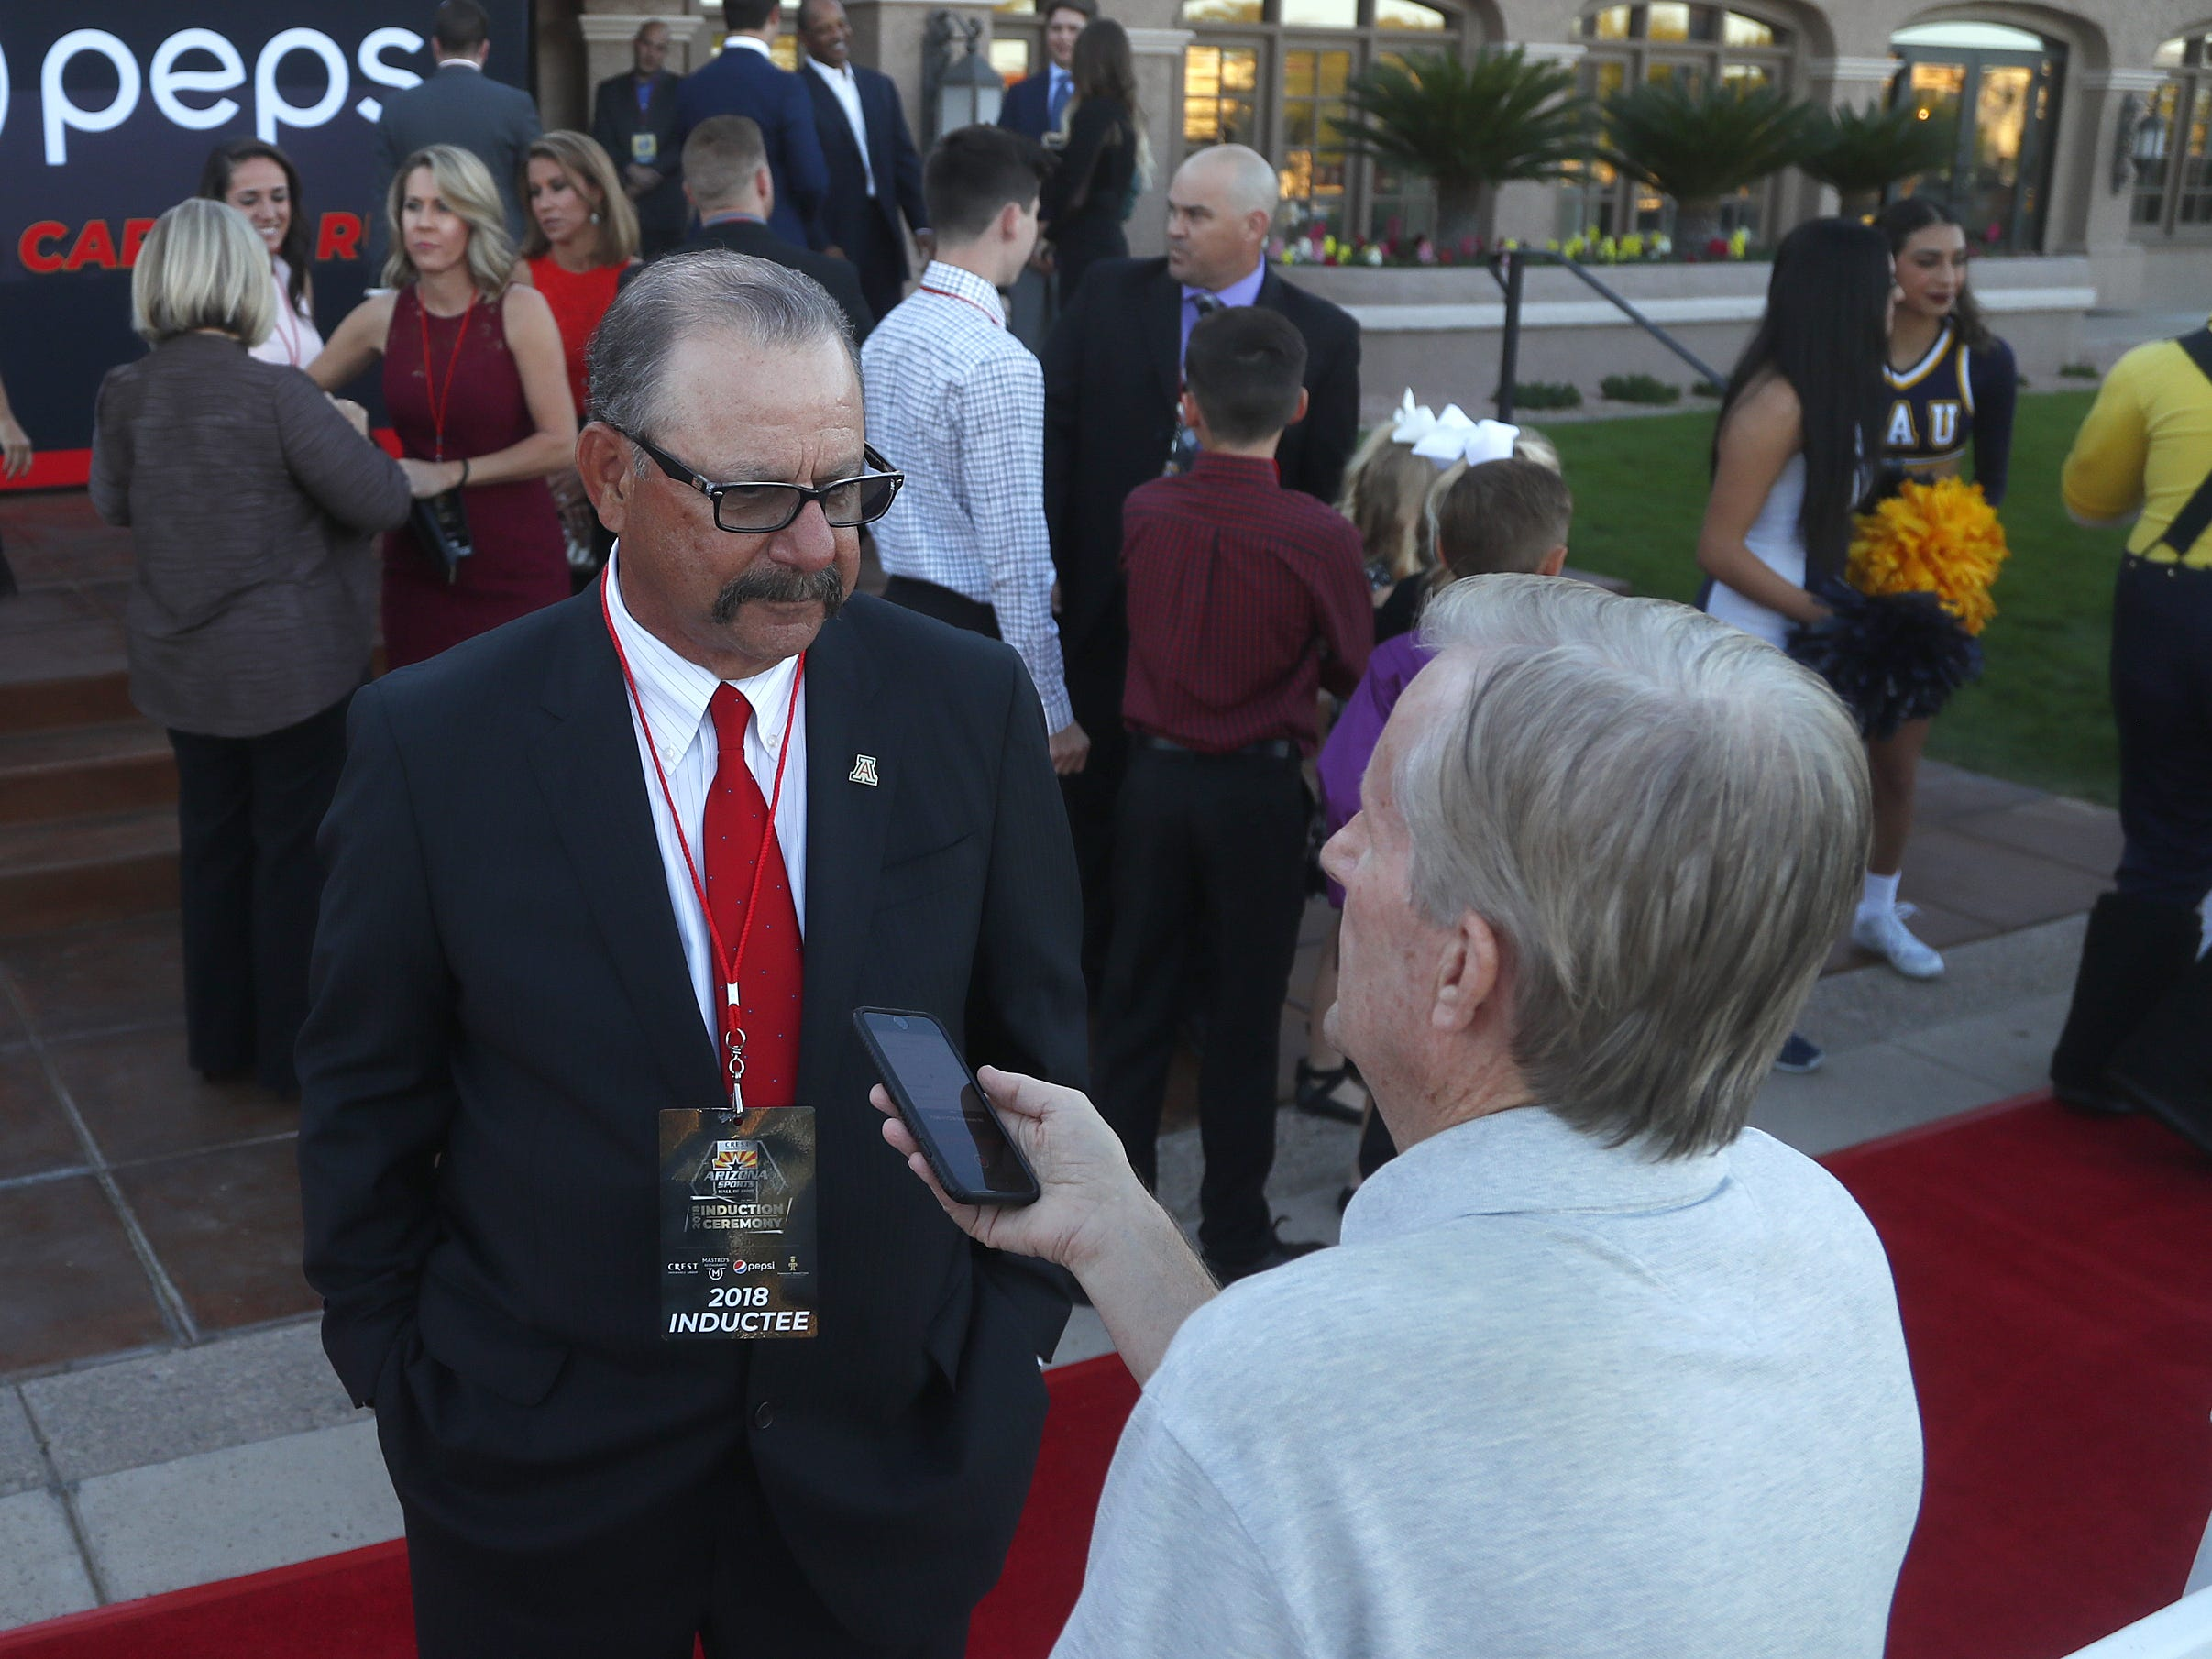 Mike Candrea speaks with reporters before the Arizona Sports Hall of Fame induction ceremony at the Scottsdale Plaza Resort in Scottsdale, Ariz. on November 1, 2018.